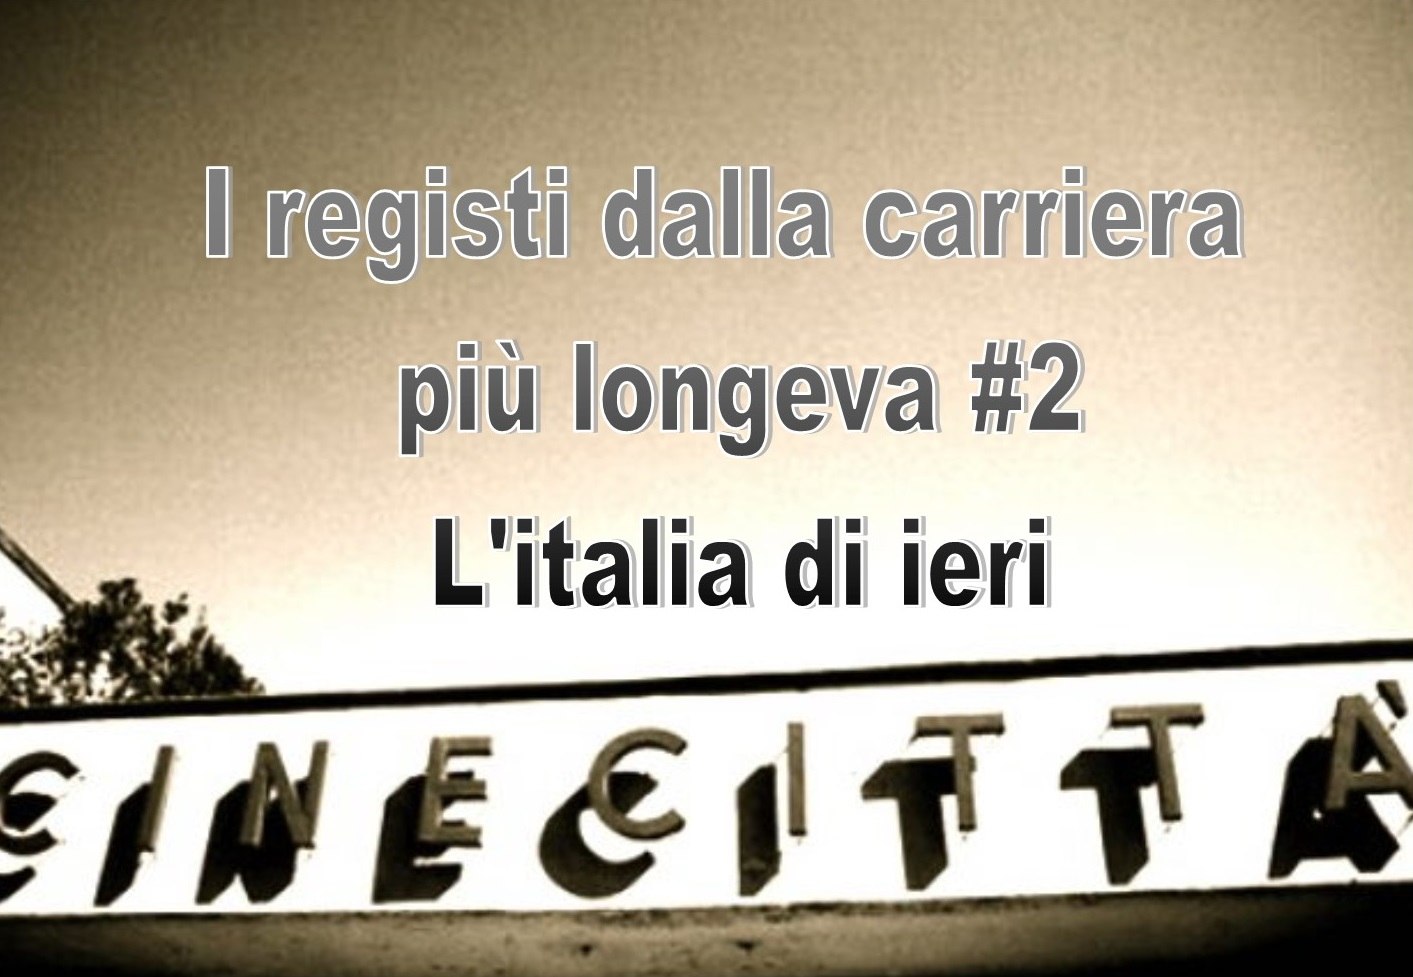 Cinema: i registi dalla carriera più longeva #2 – L'Italia di ieri